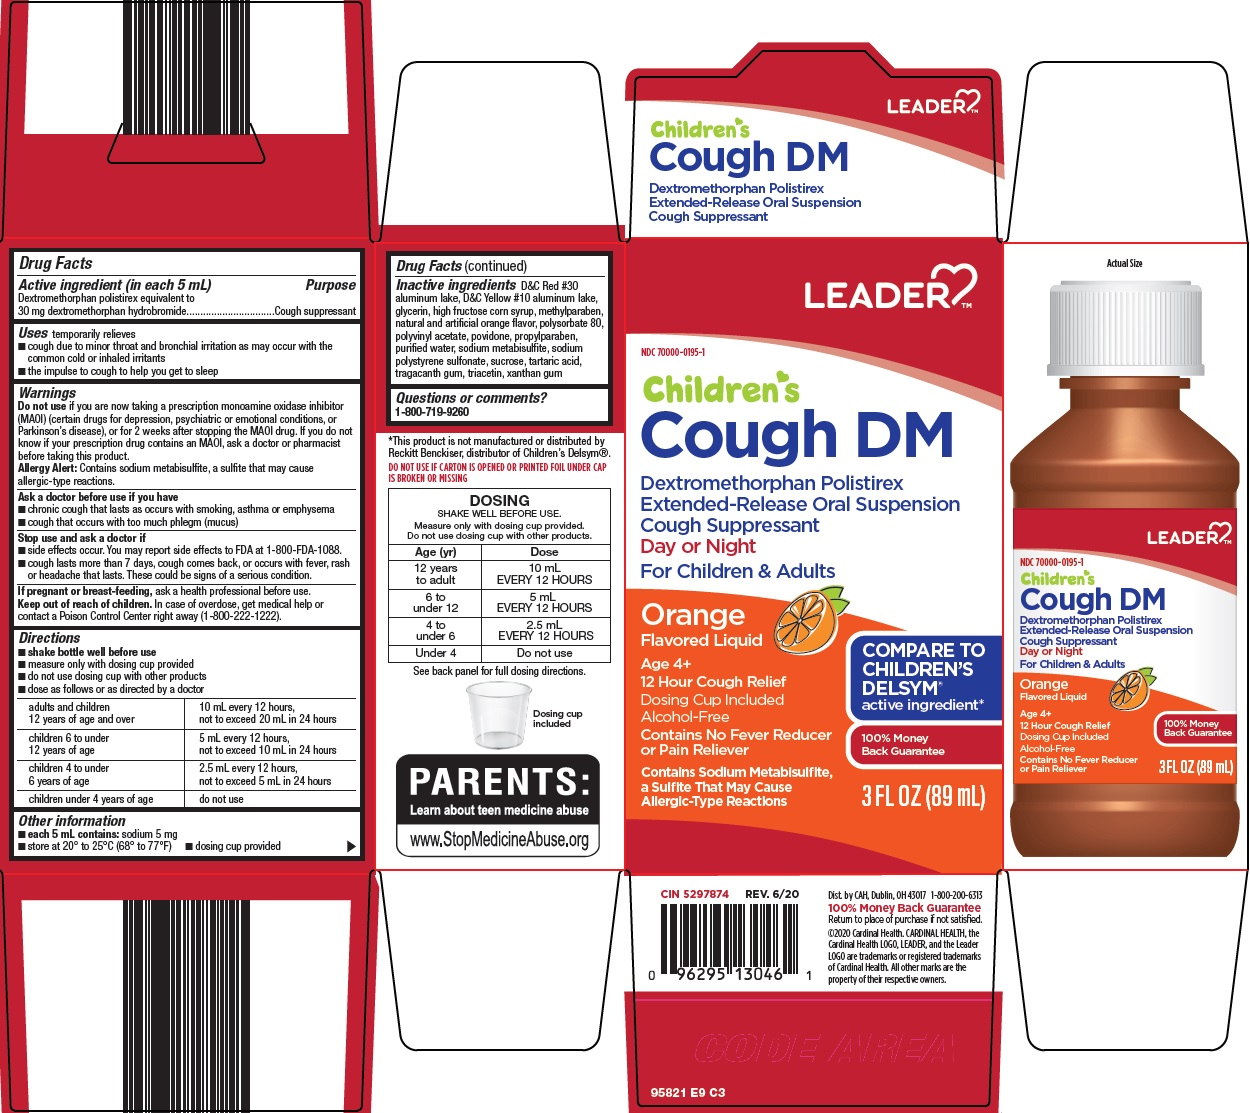 dextromethorphan polistirex (leader childrens cough dm)